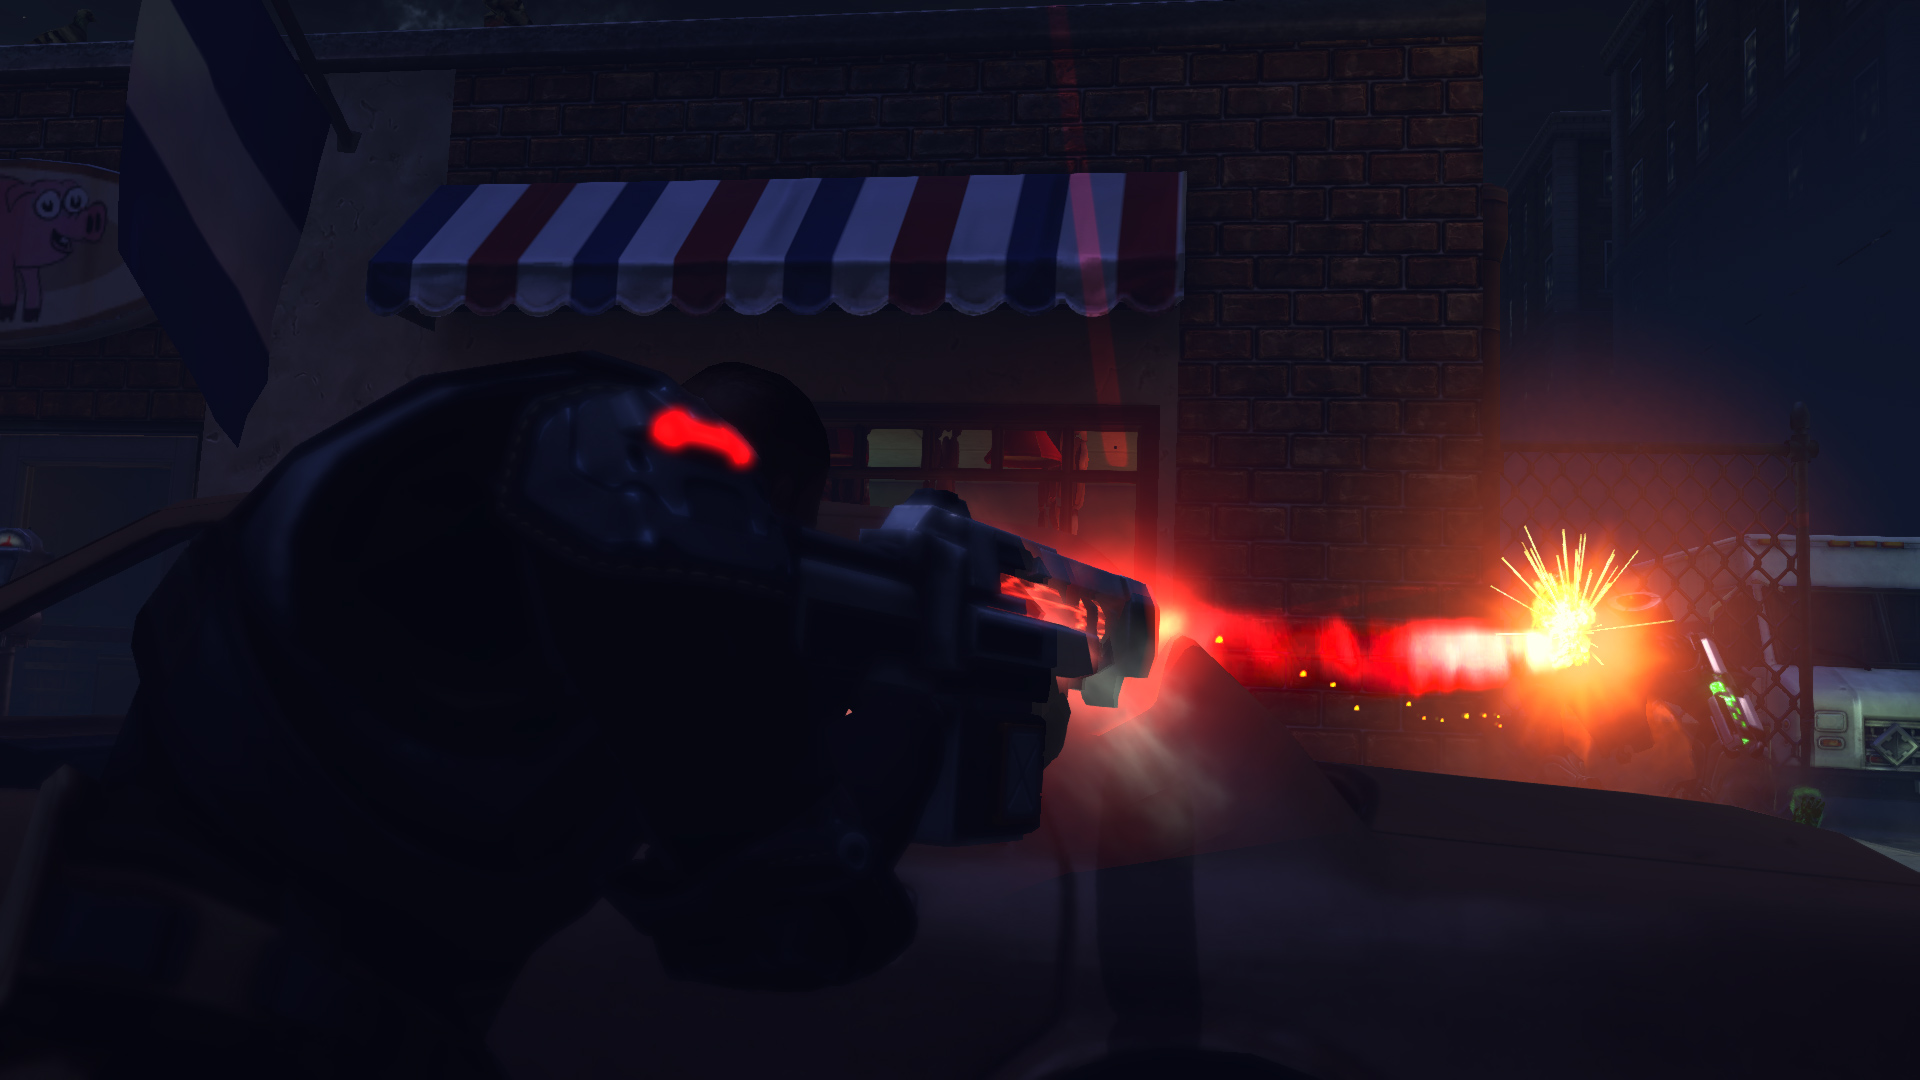 An XCOM soldier fires a laser rifle.